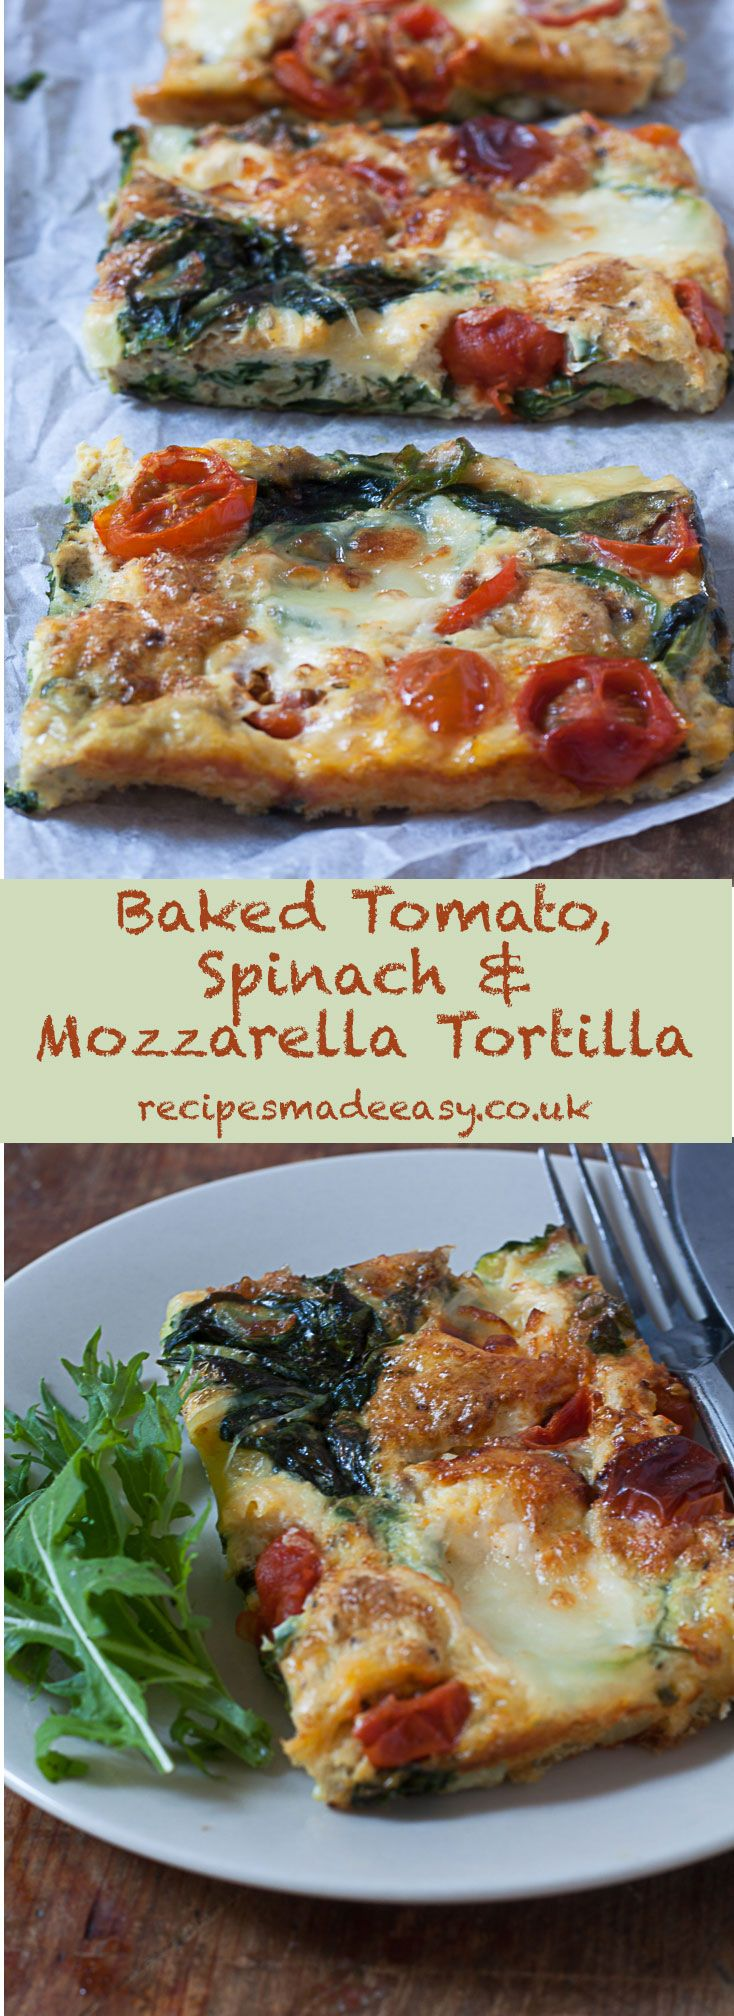 Baked Tomato, Spinach and Mozzarella Tortilla by Recipes Made Easy - Serve hot or cold for the perfect Summer time meal. via @jacdotbee